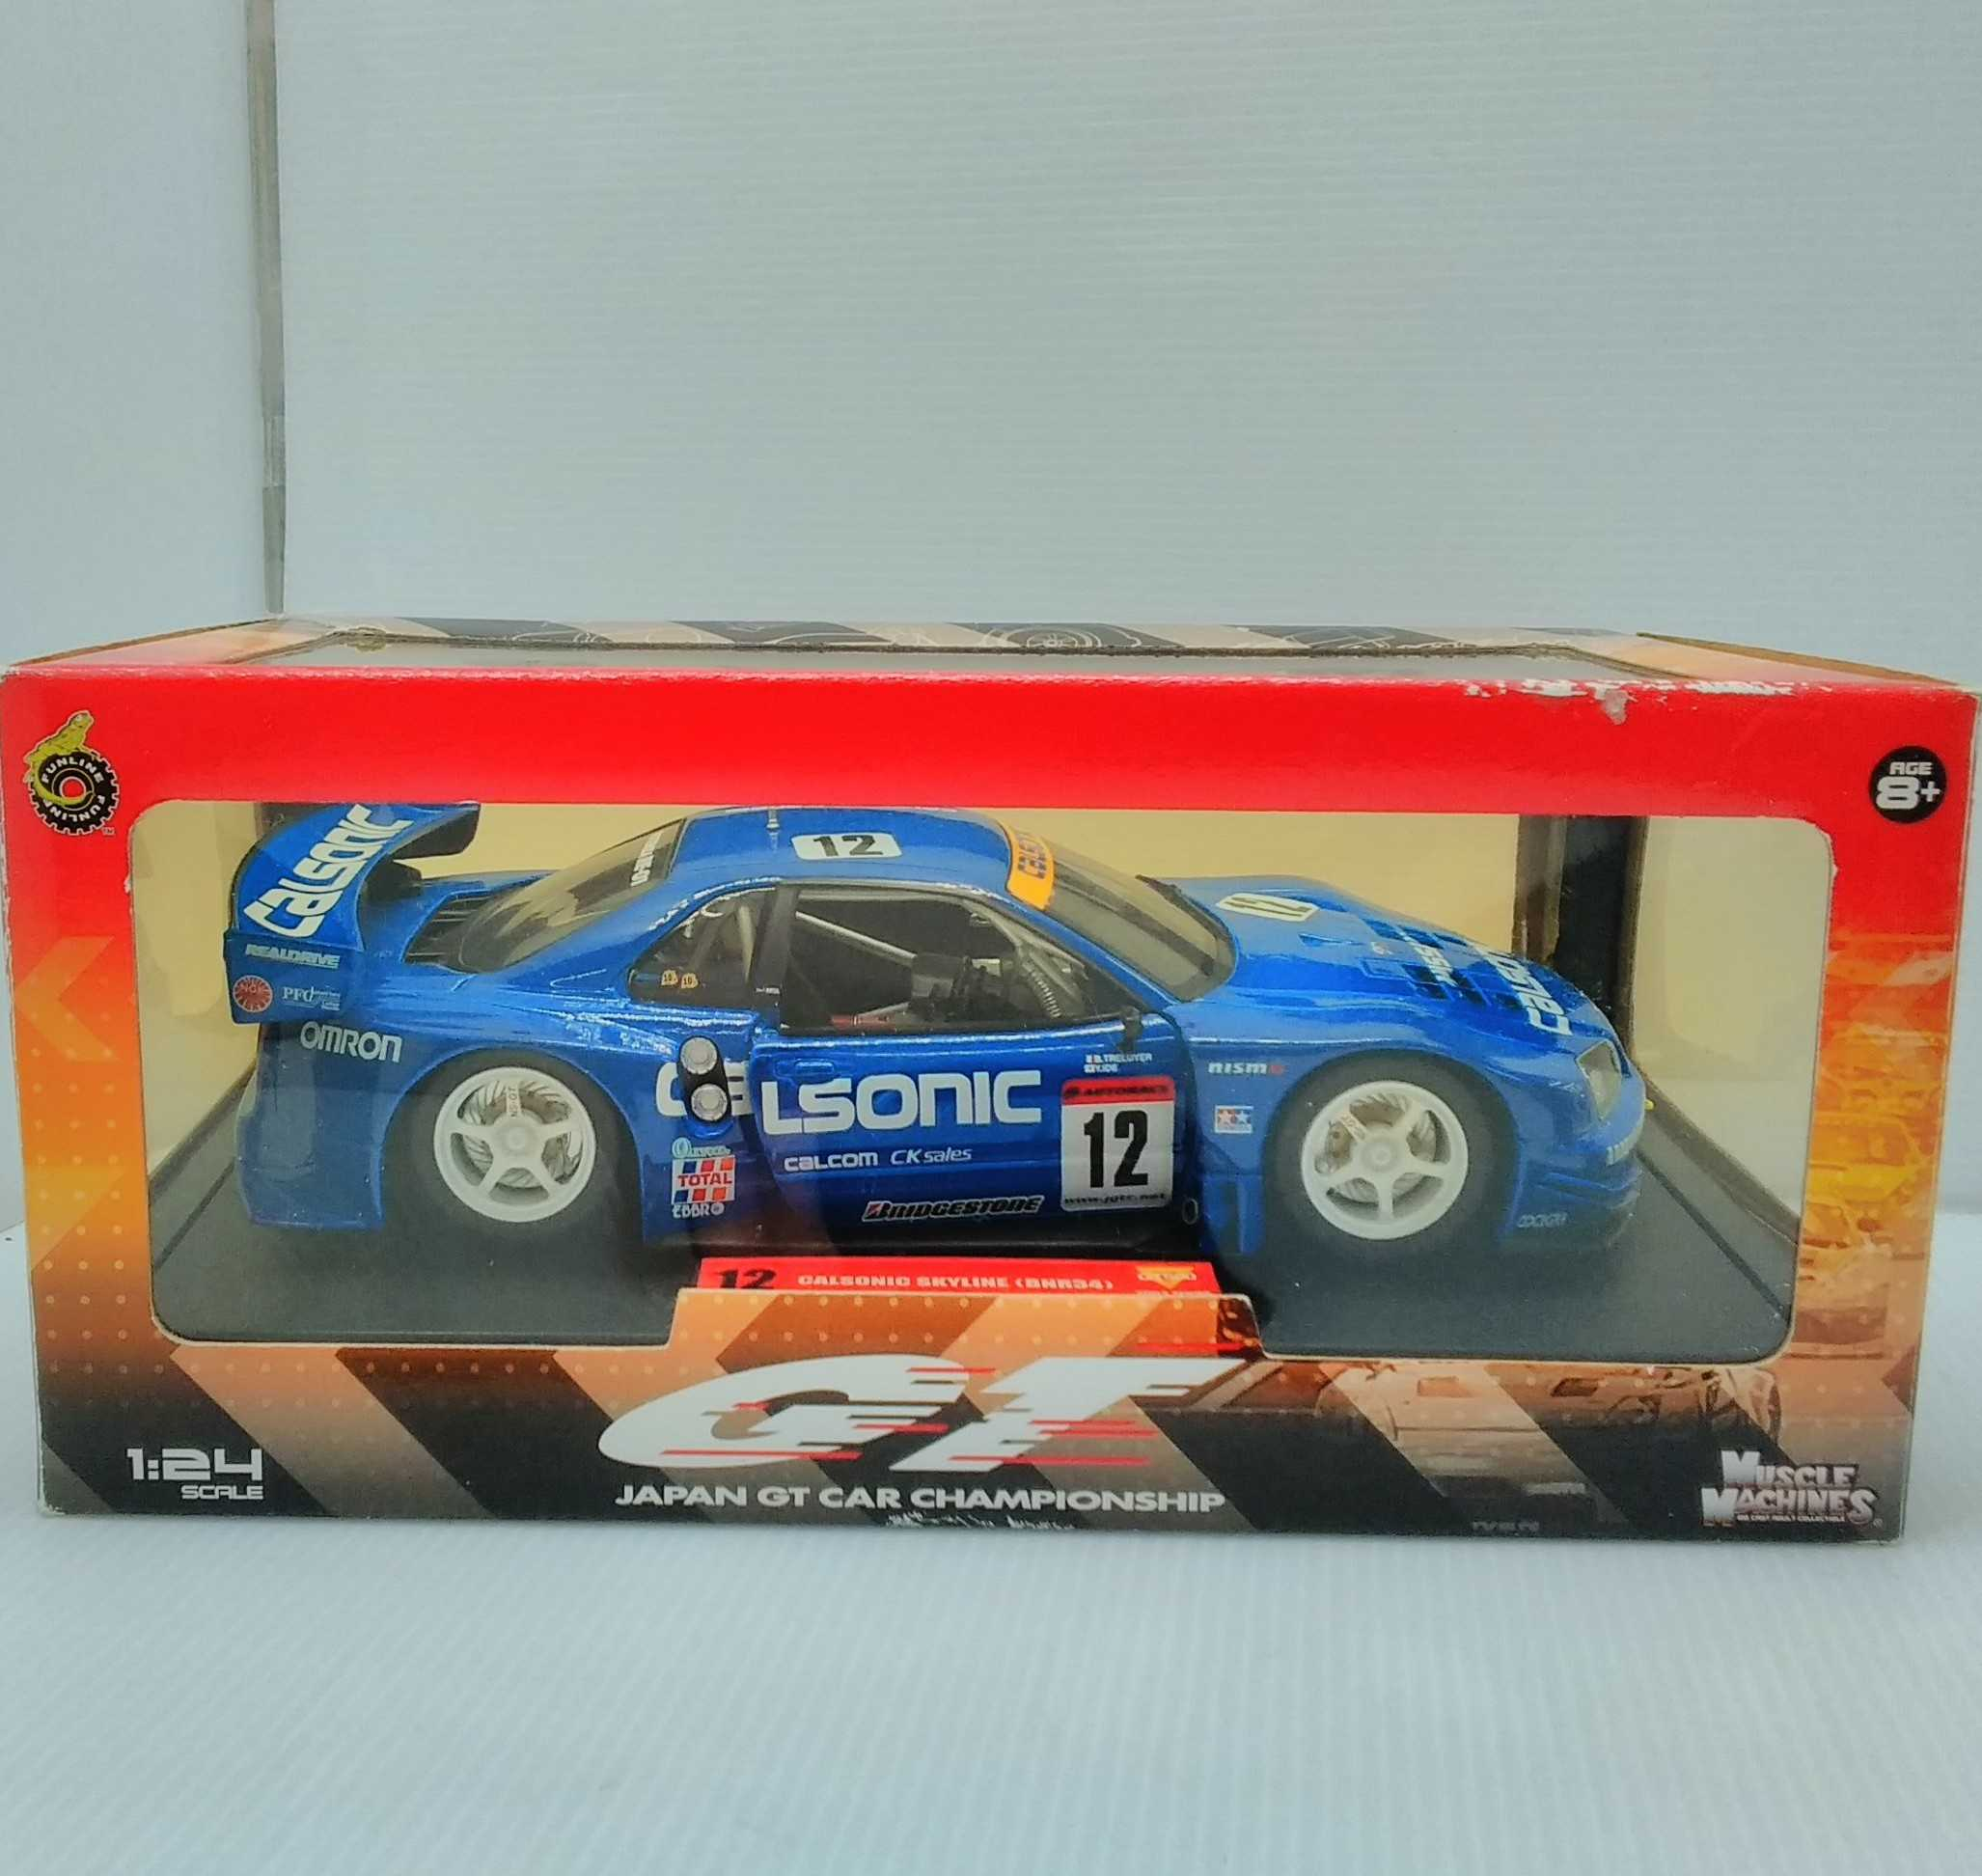 GT 1/24|MUSCLE MACHINES